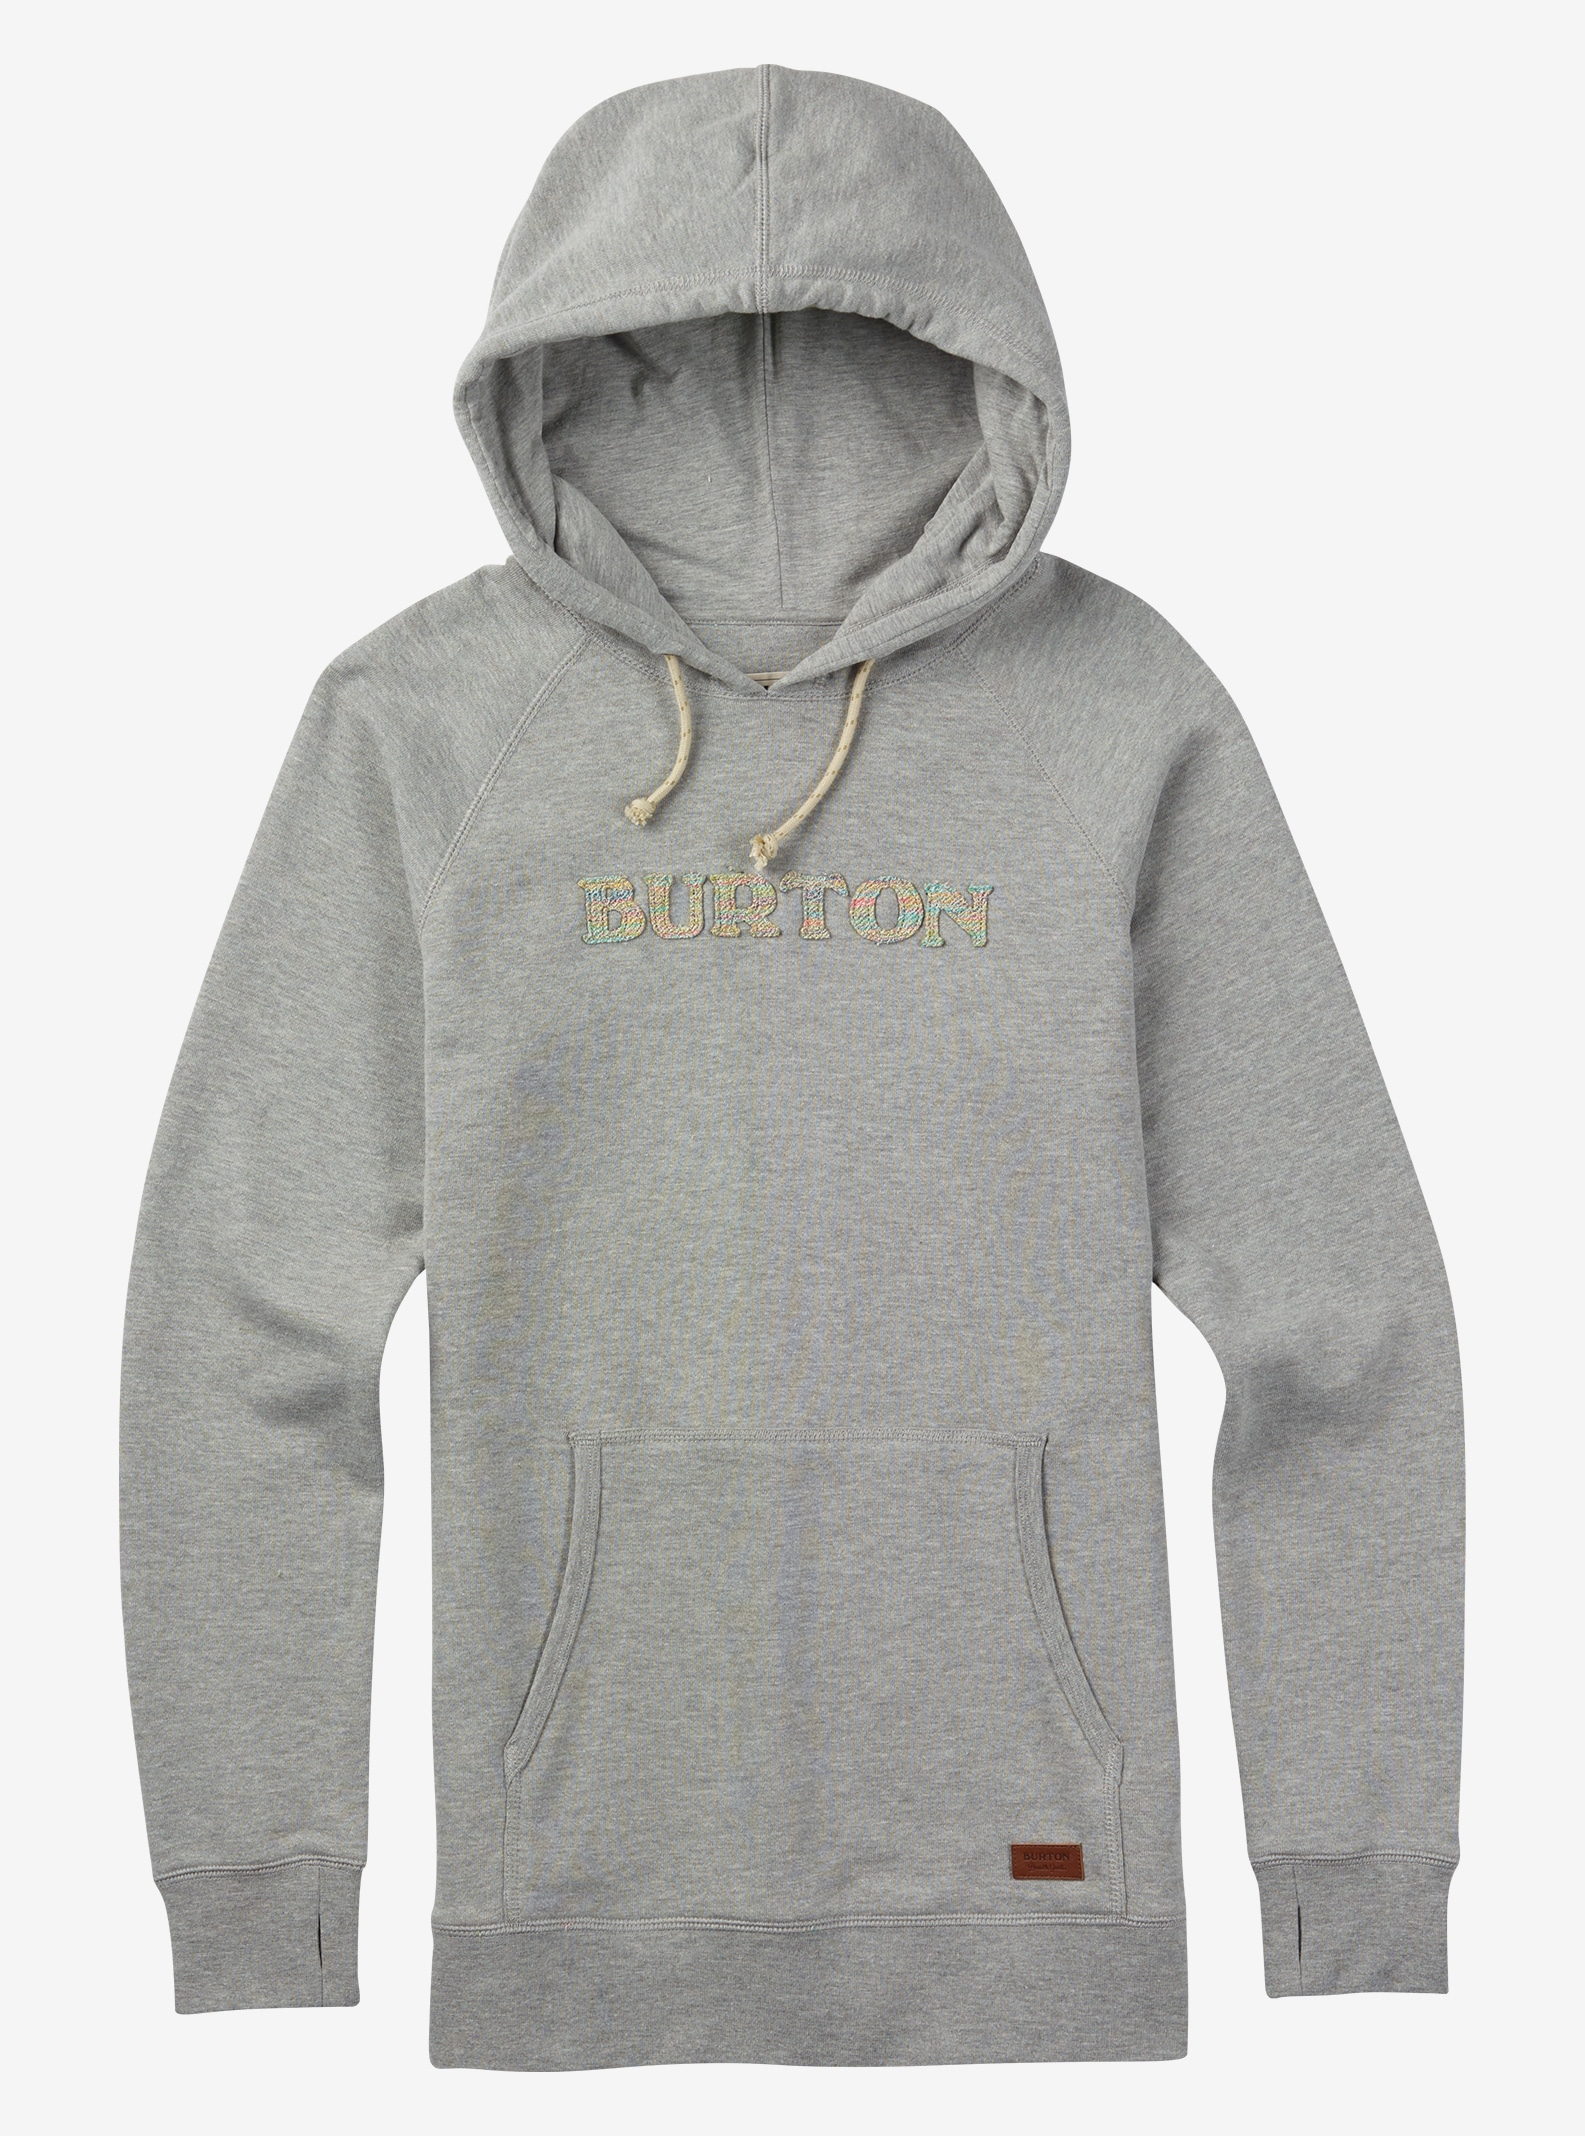 Burton Custom Pullover Hoodie shown in Gray Heather